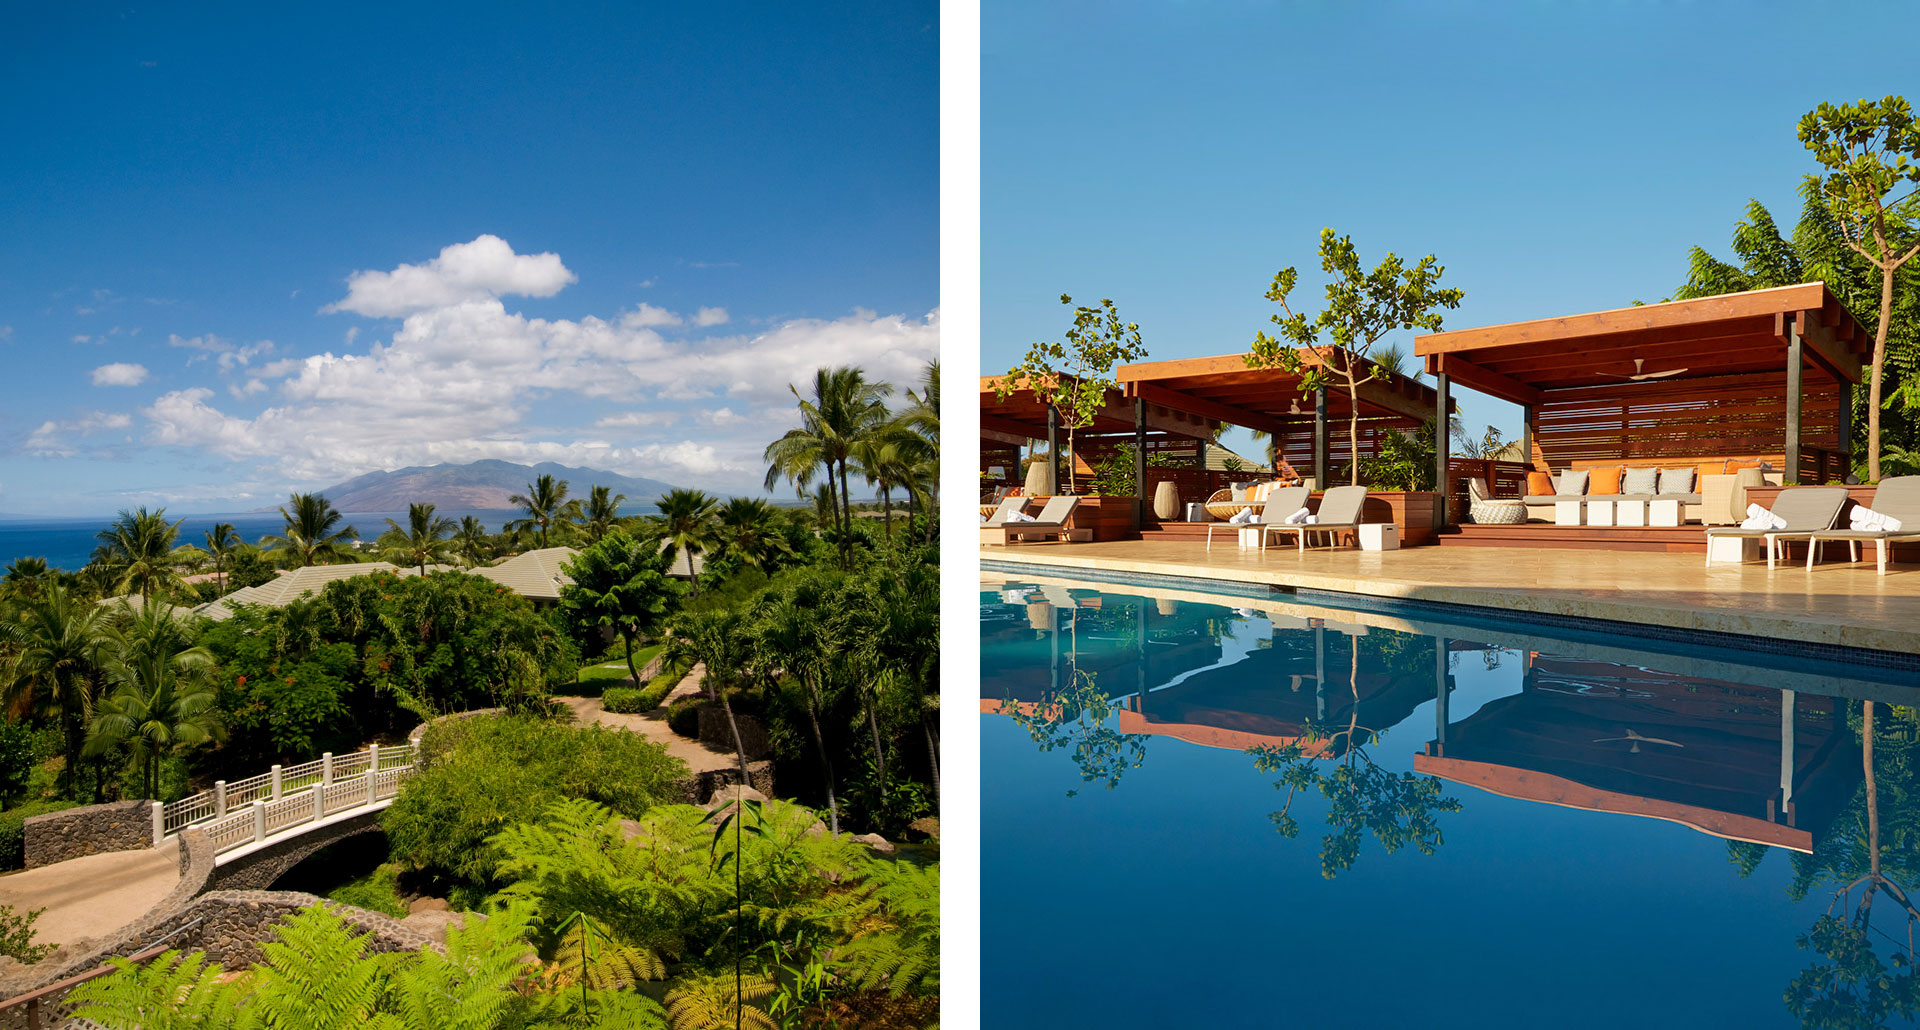 Hotel Wailea - boutique hotel in Island of Maui